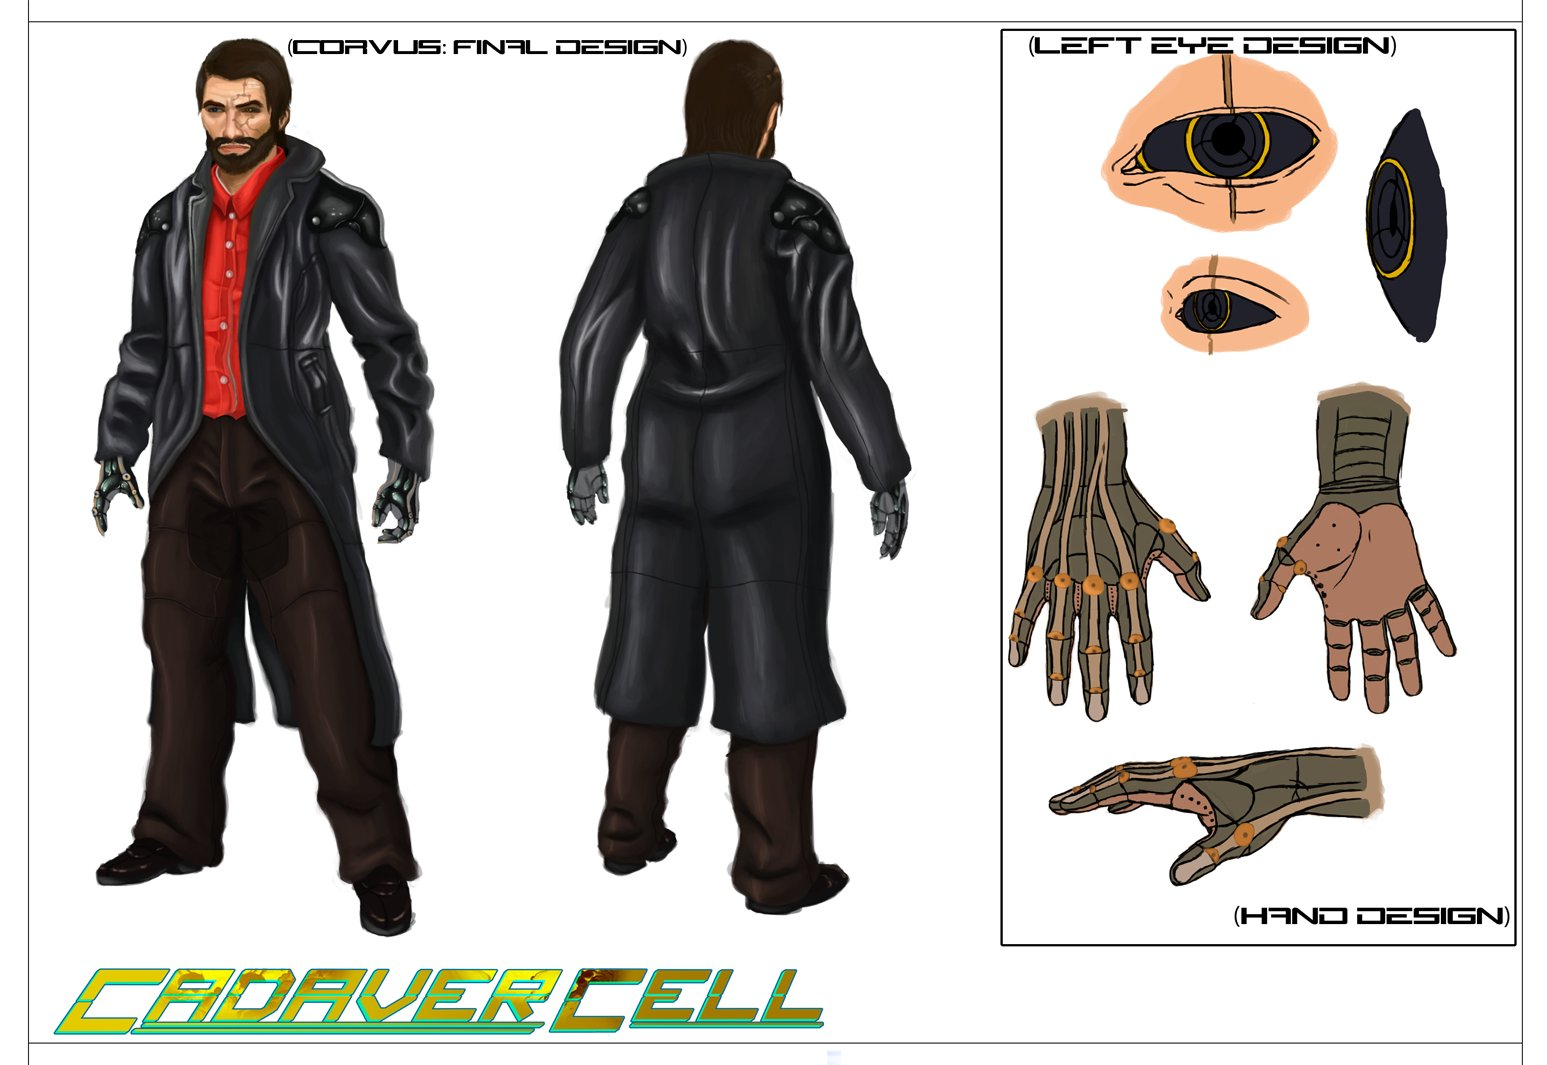 Fantasy Character Design Sheet : Hayden robinson university project cadaver cell